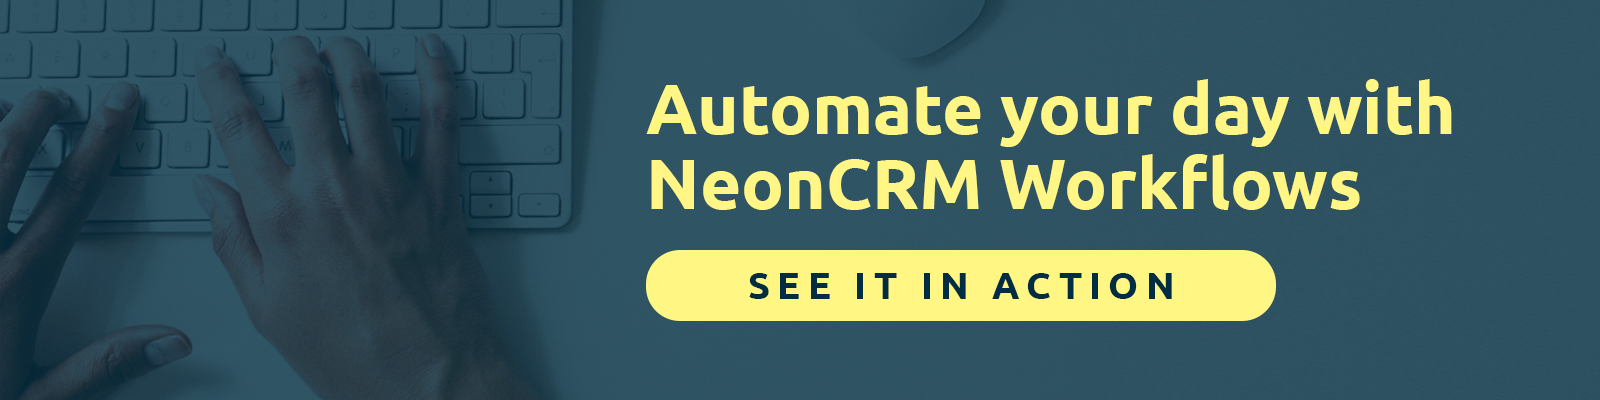 Automate your day and save time with NeonCRM workflows.